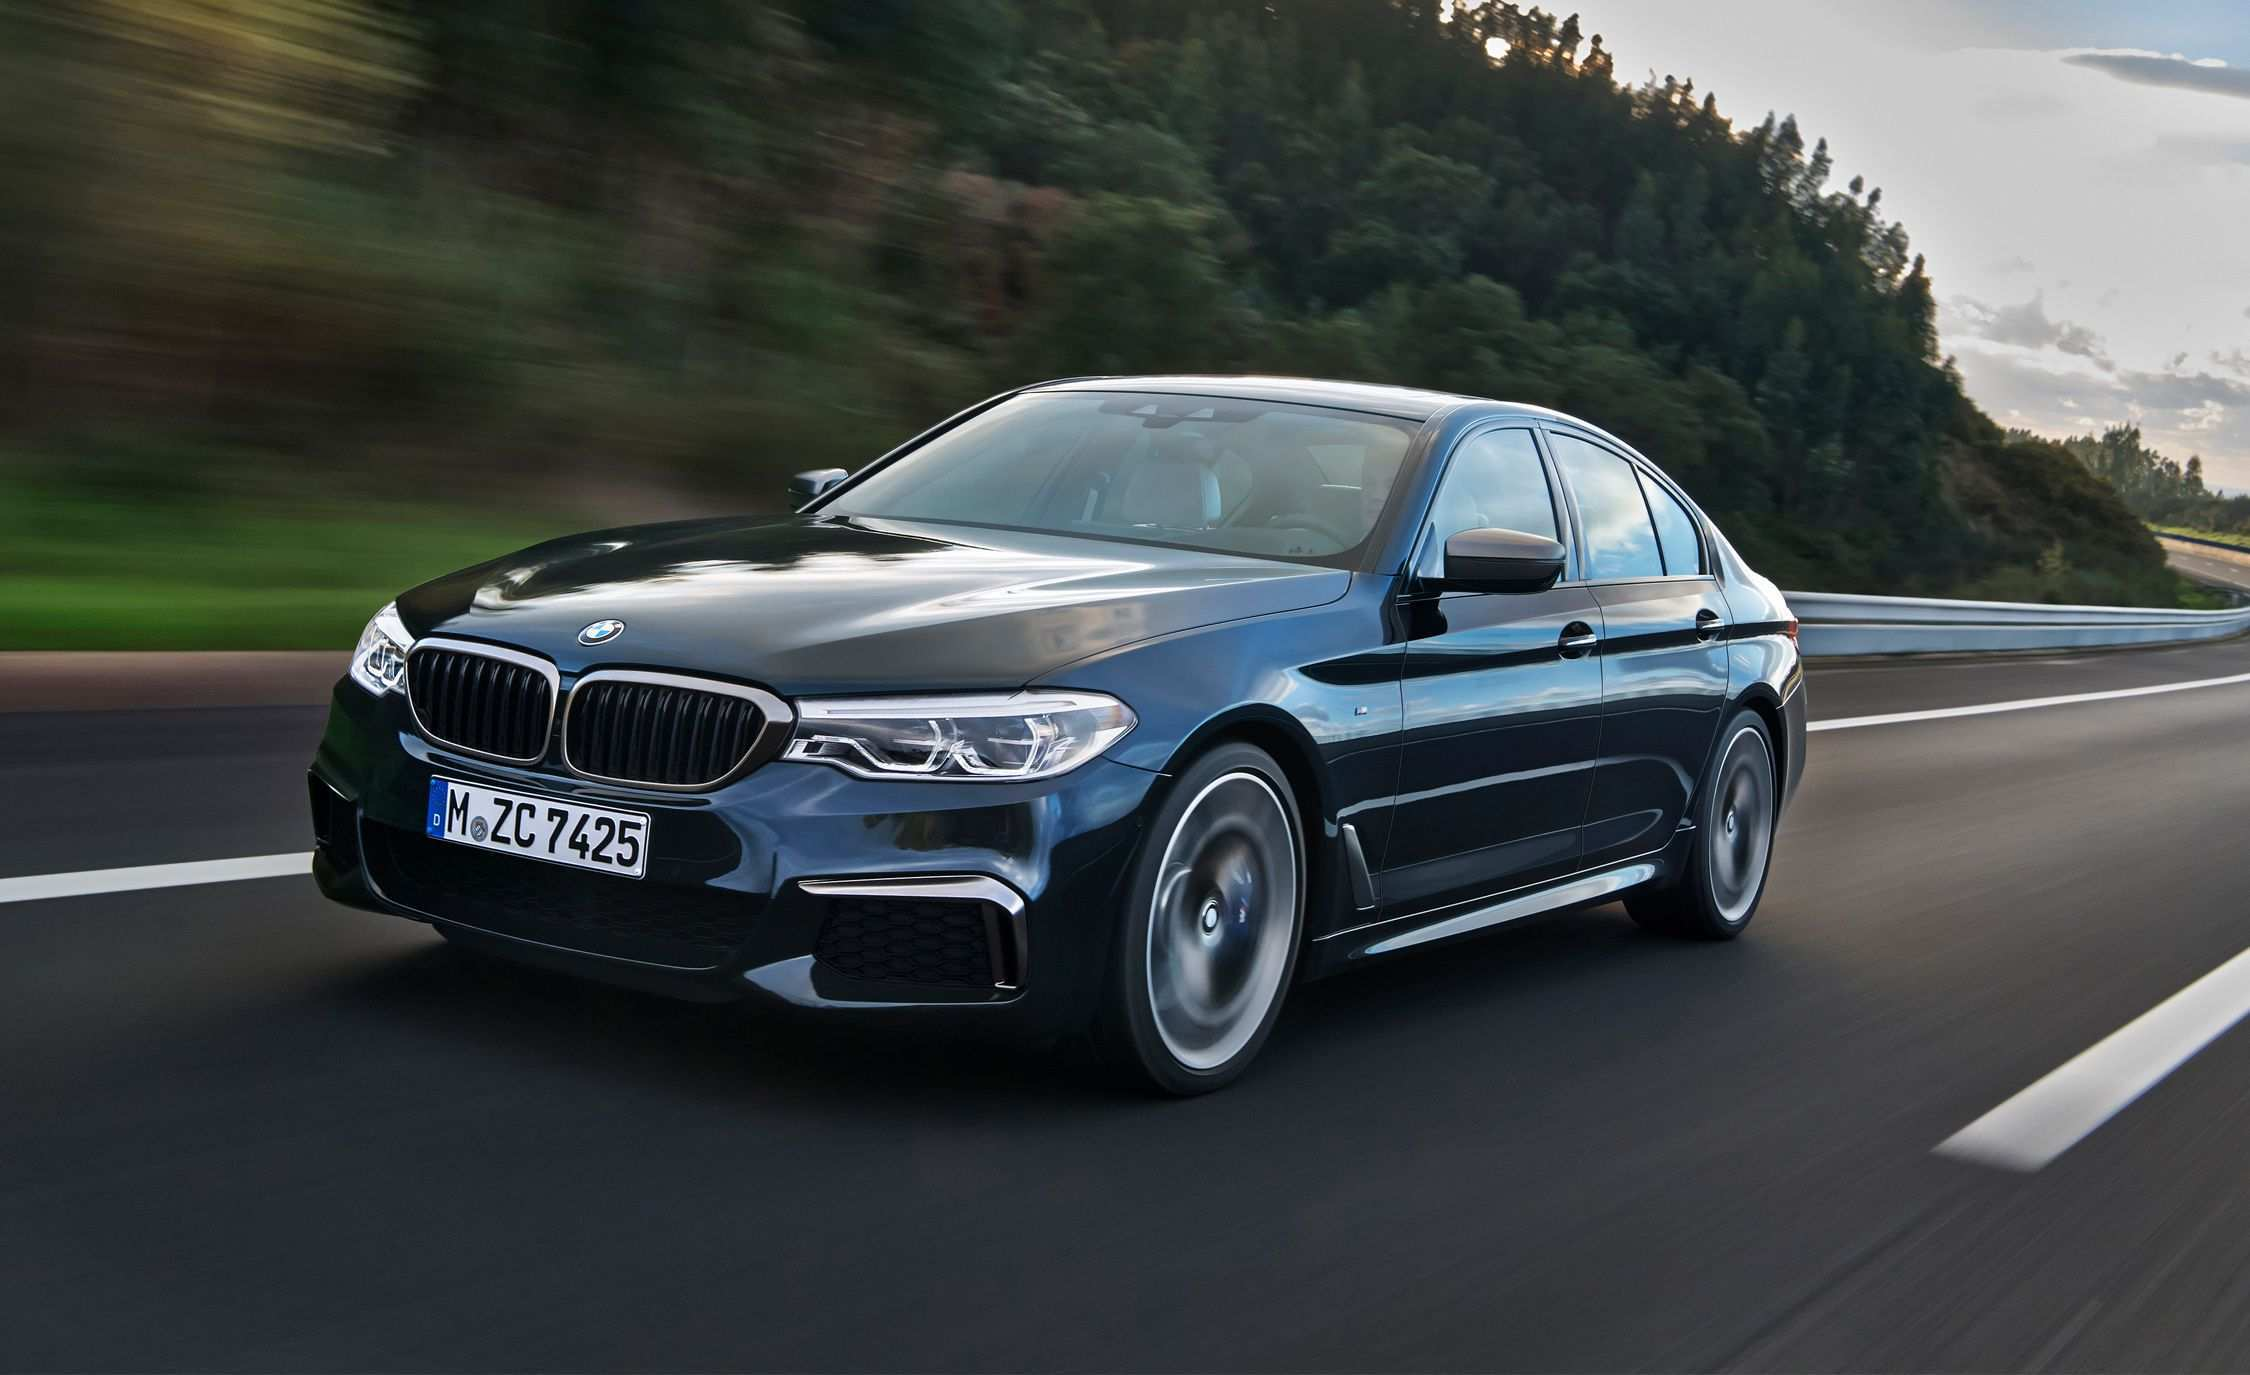 81 The Best 2020 BMW 550I Release